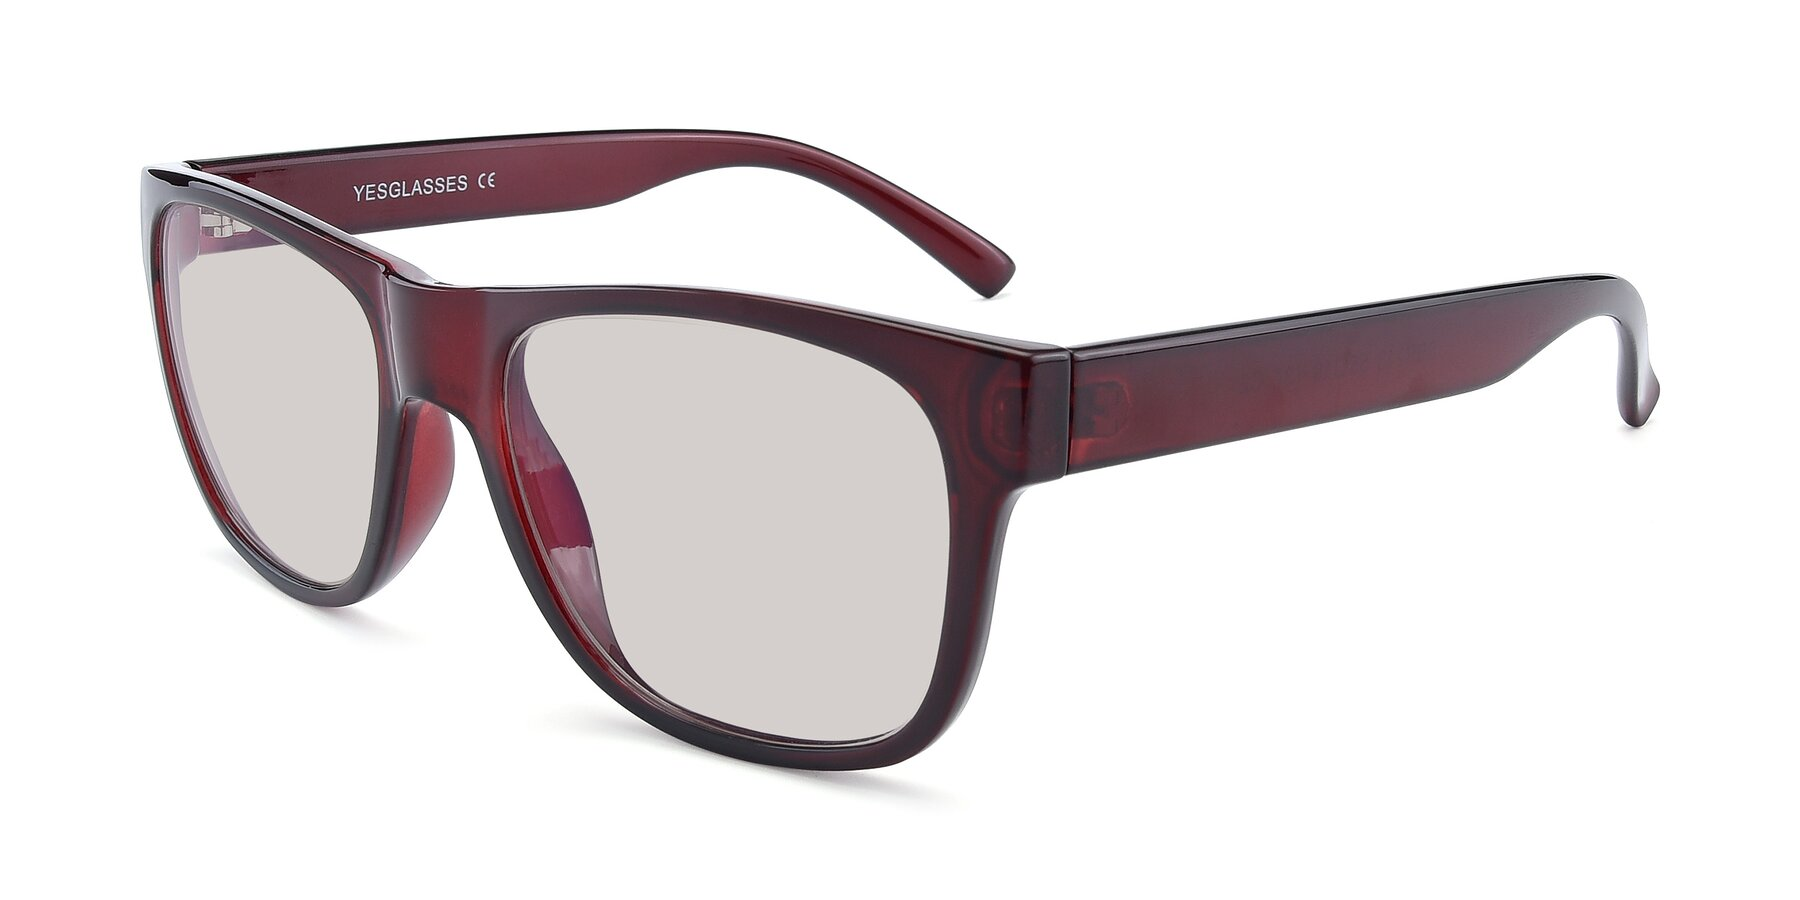 Angle of SSR213 in Wine with Light Brown Tinted Lenses